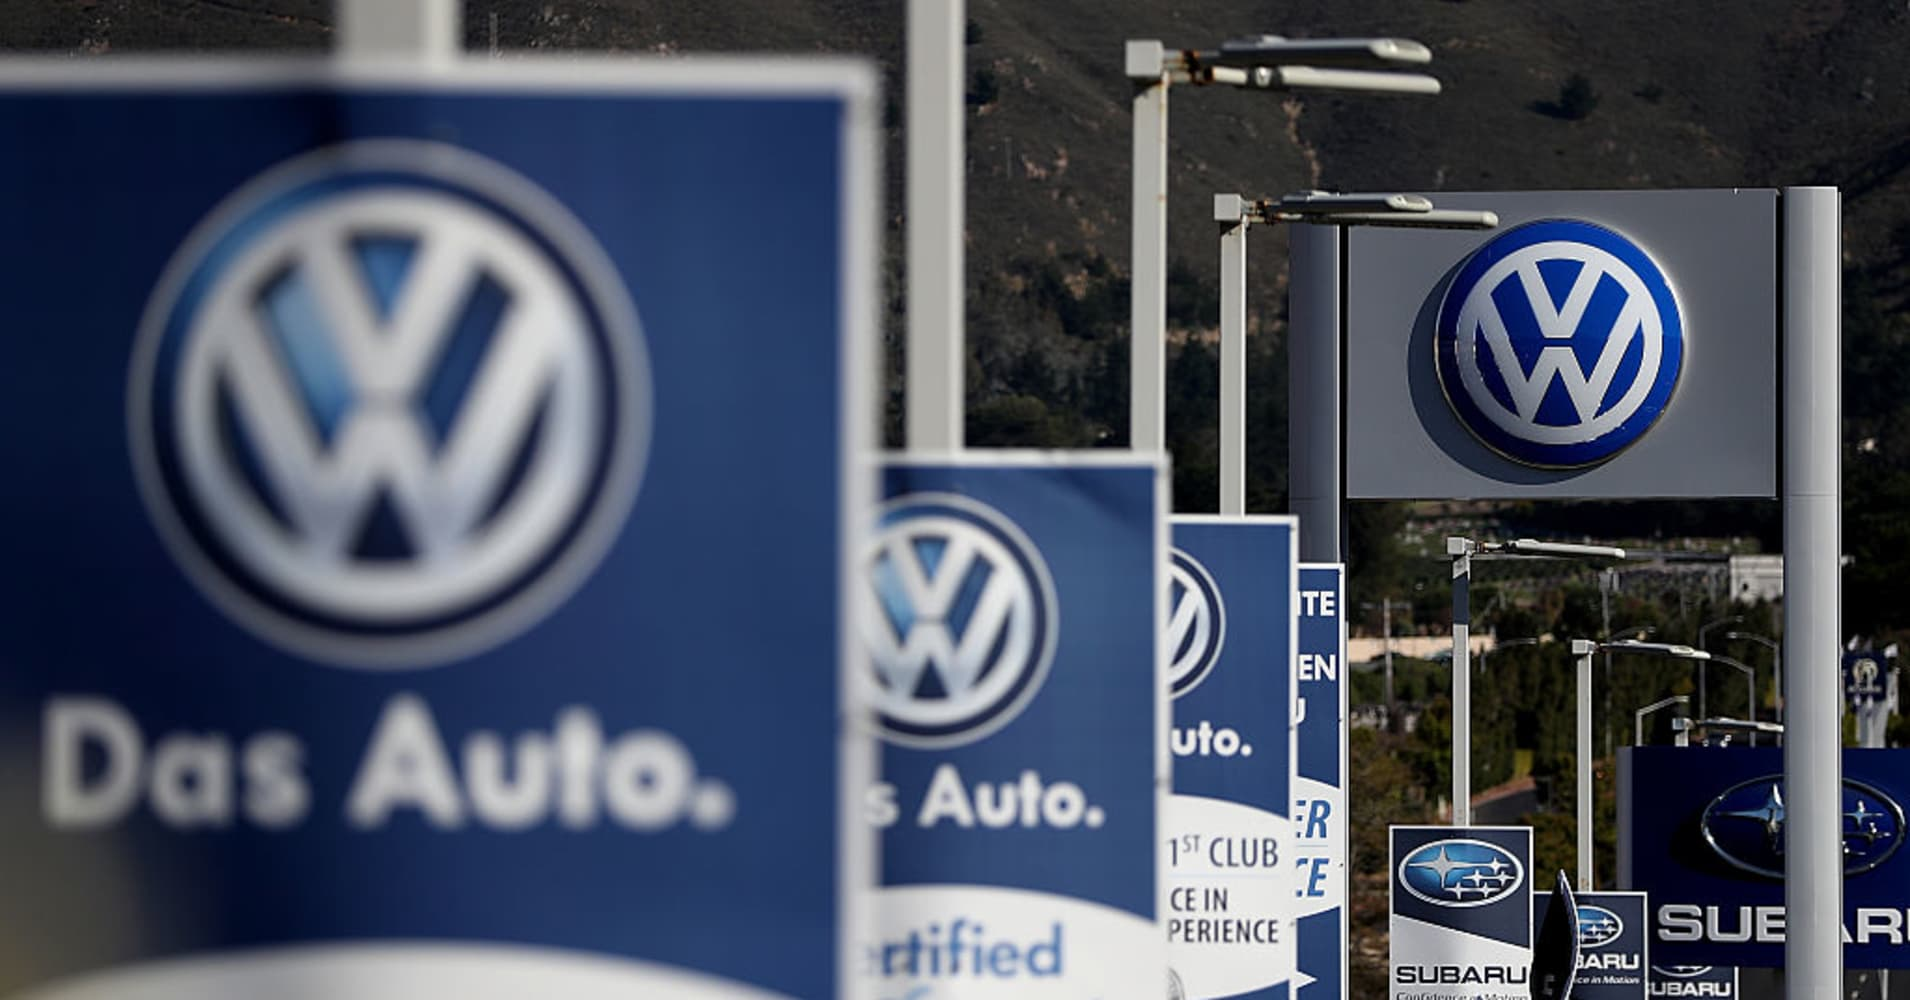 Volkswagen close to settlement with U.S. Justice Department on emissions scandal